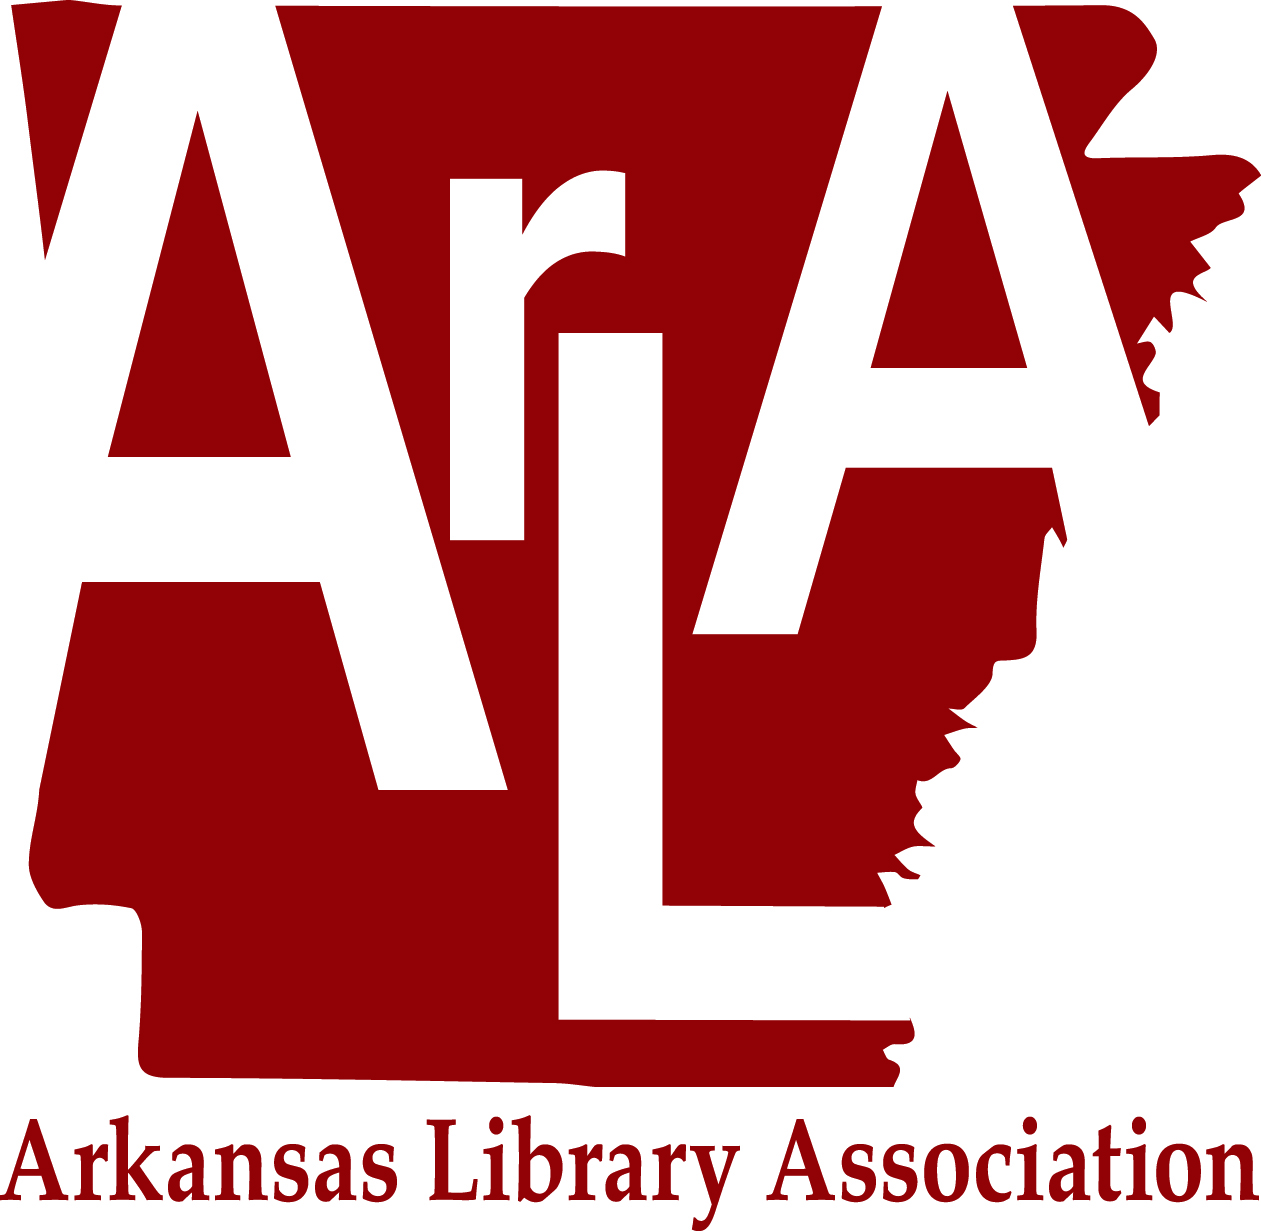 Arkansas Library Association Logo